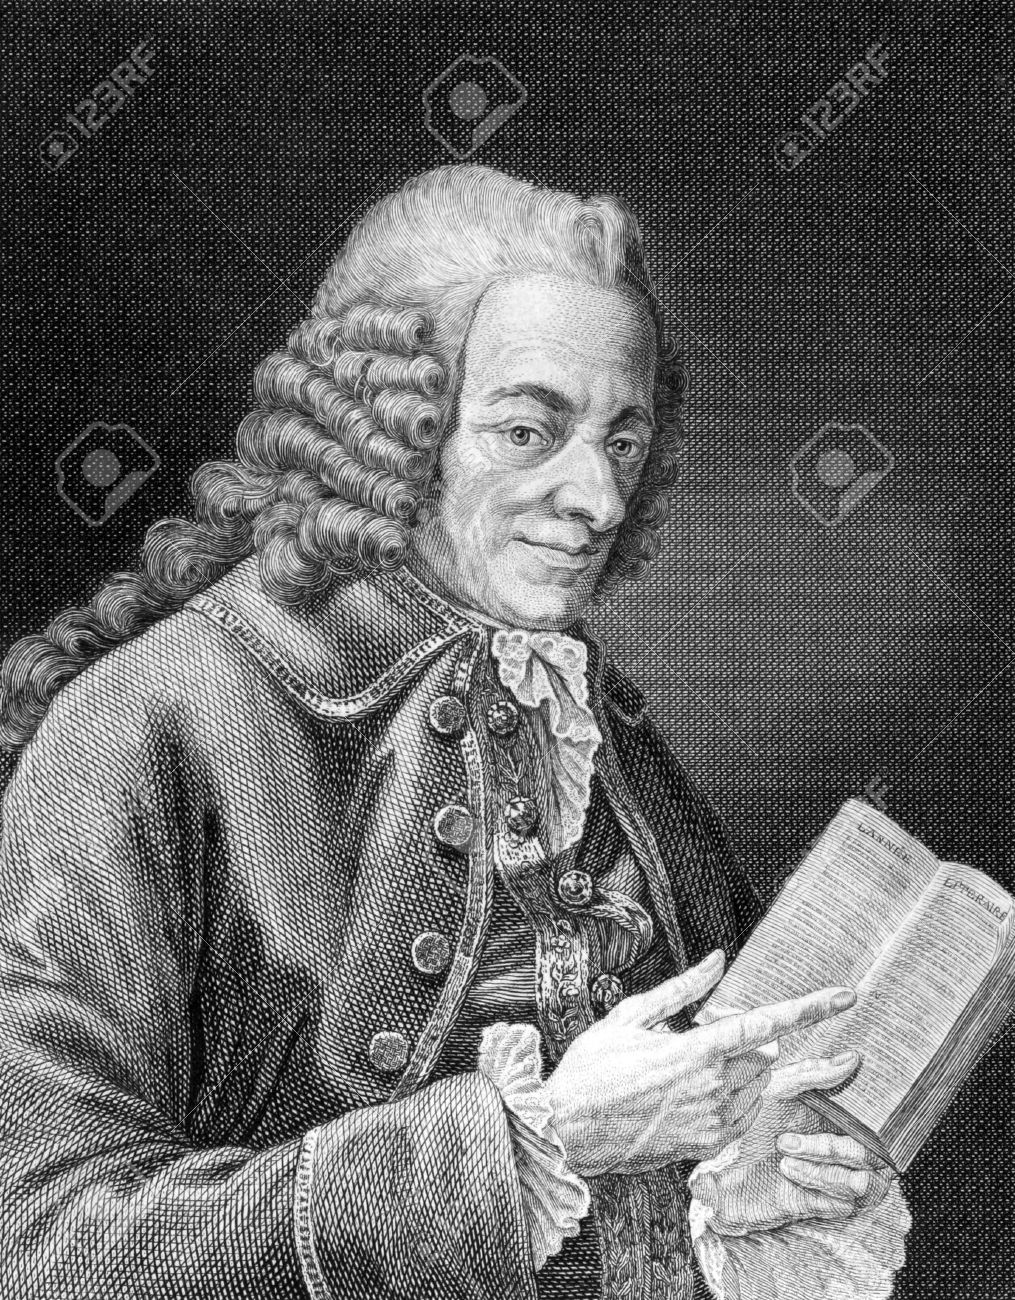 Voltaire (1694-1778) On Engraving From 1859. French Enlightenment ...